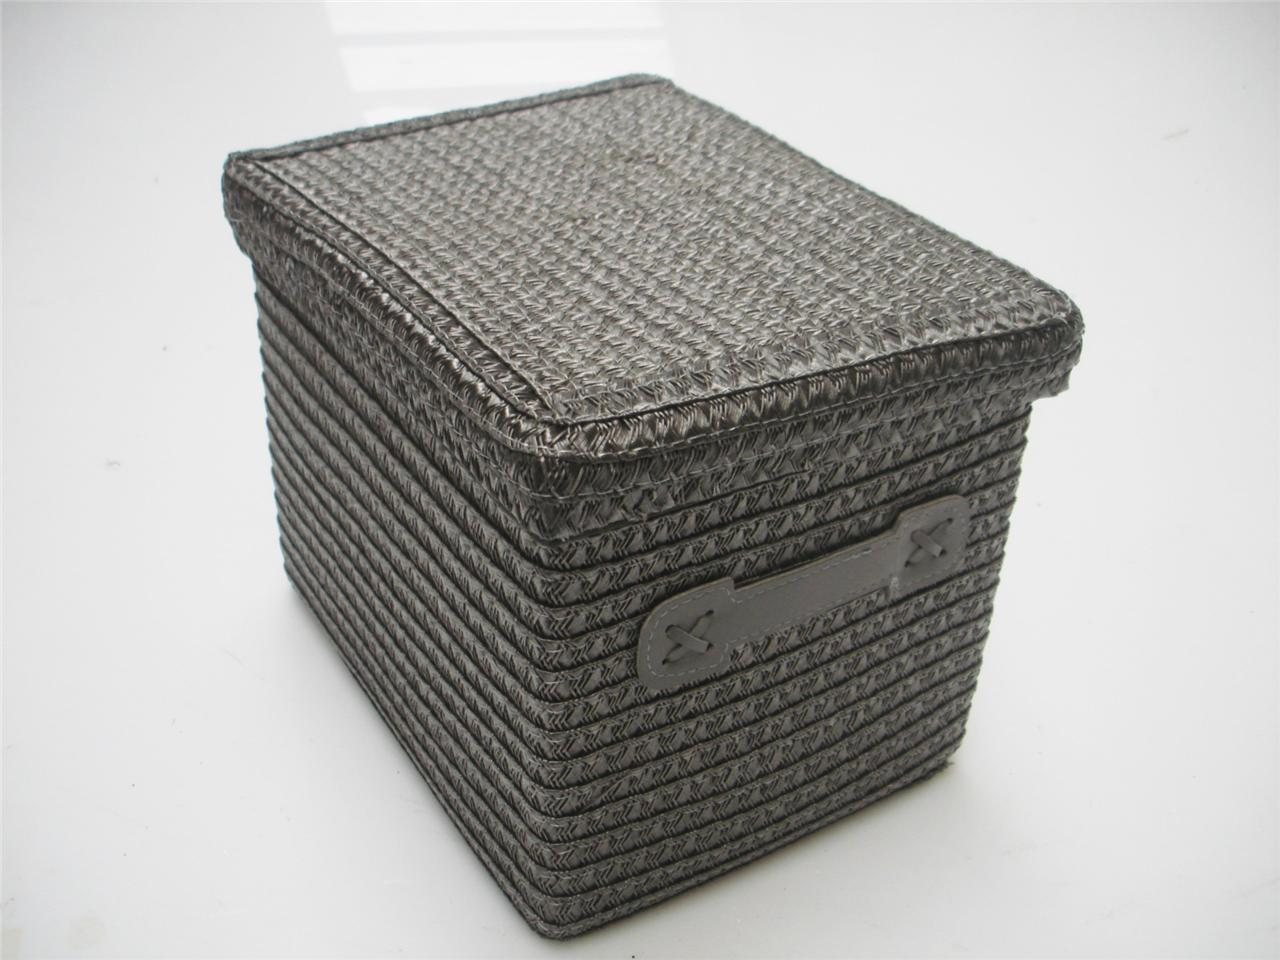 Woven Storage Baskets With Handles : Grey handle woven storage basket w lid home baby nursery